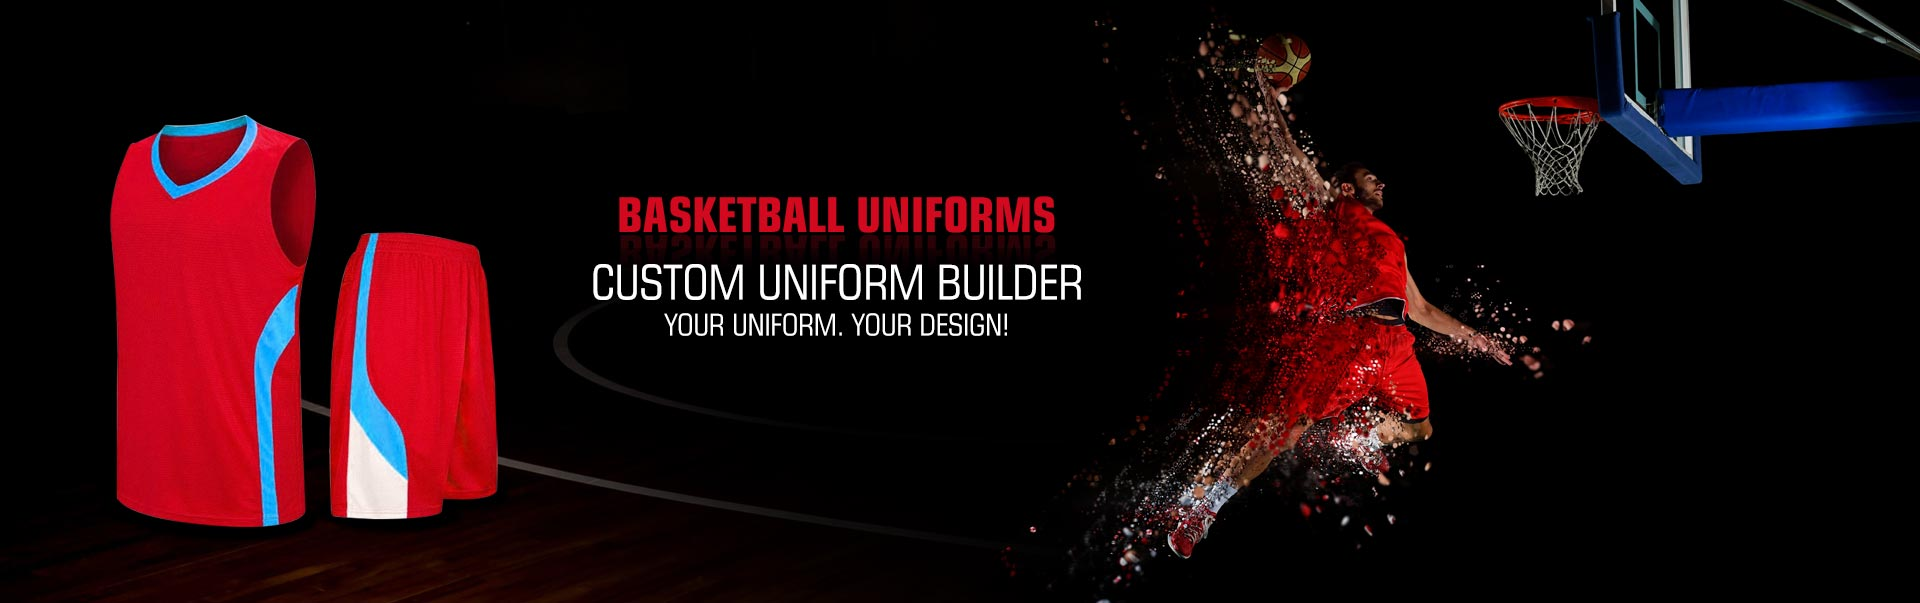 Basketball Uniforms Wholesaler, Suppliers in Anaheim